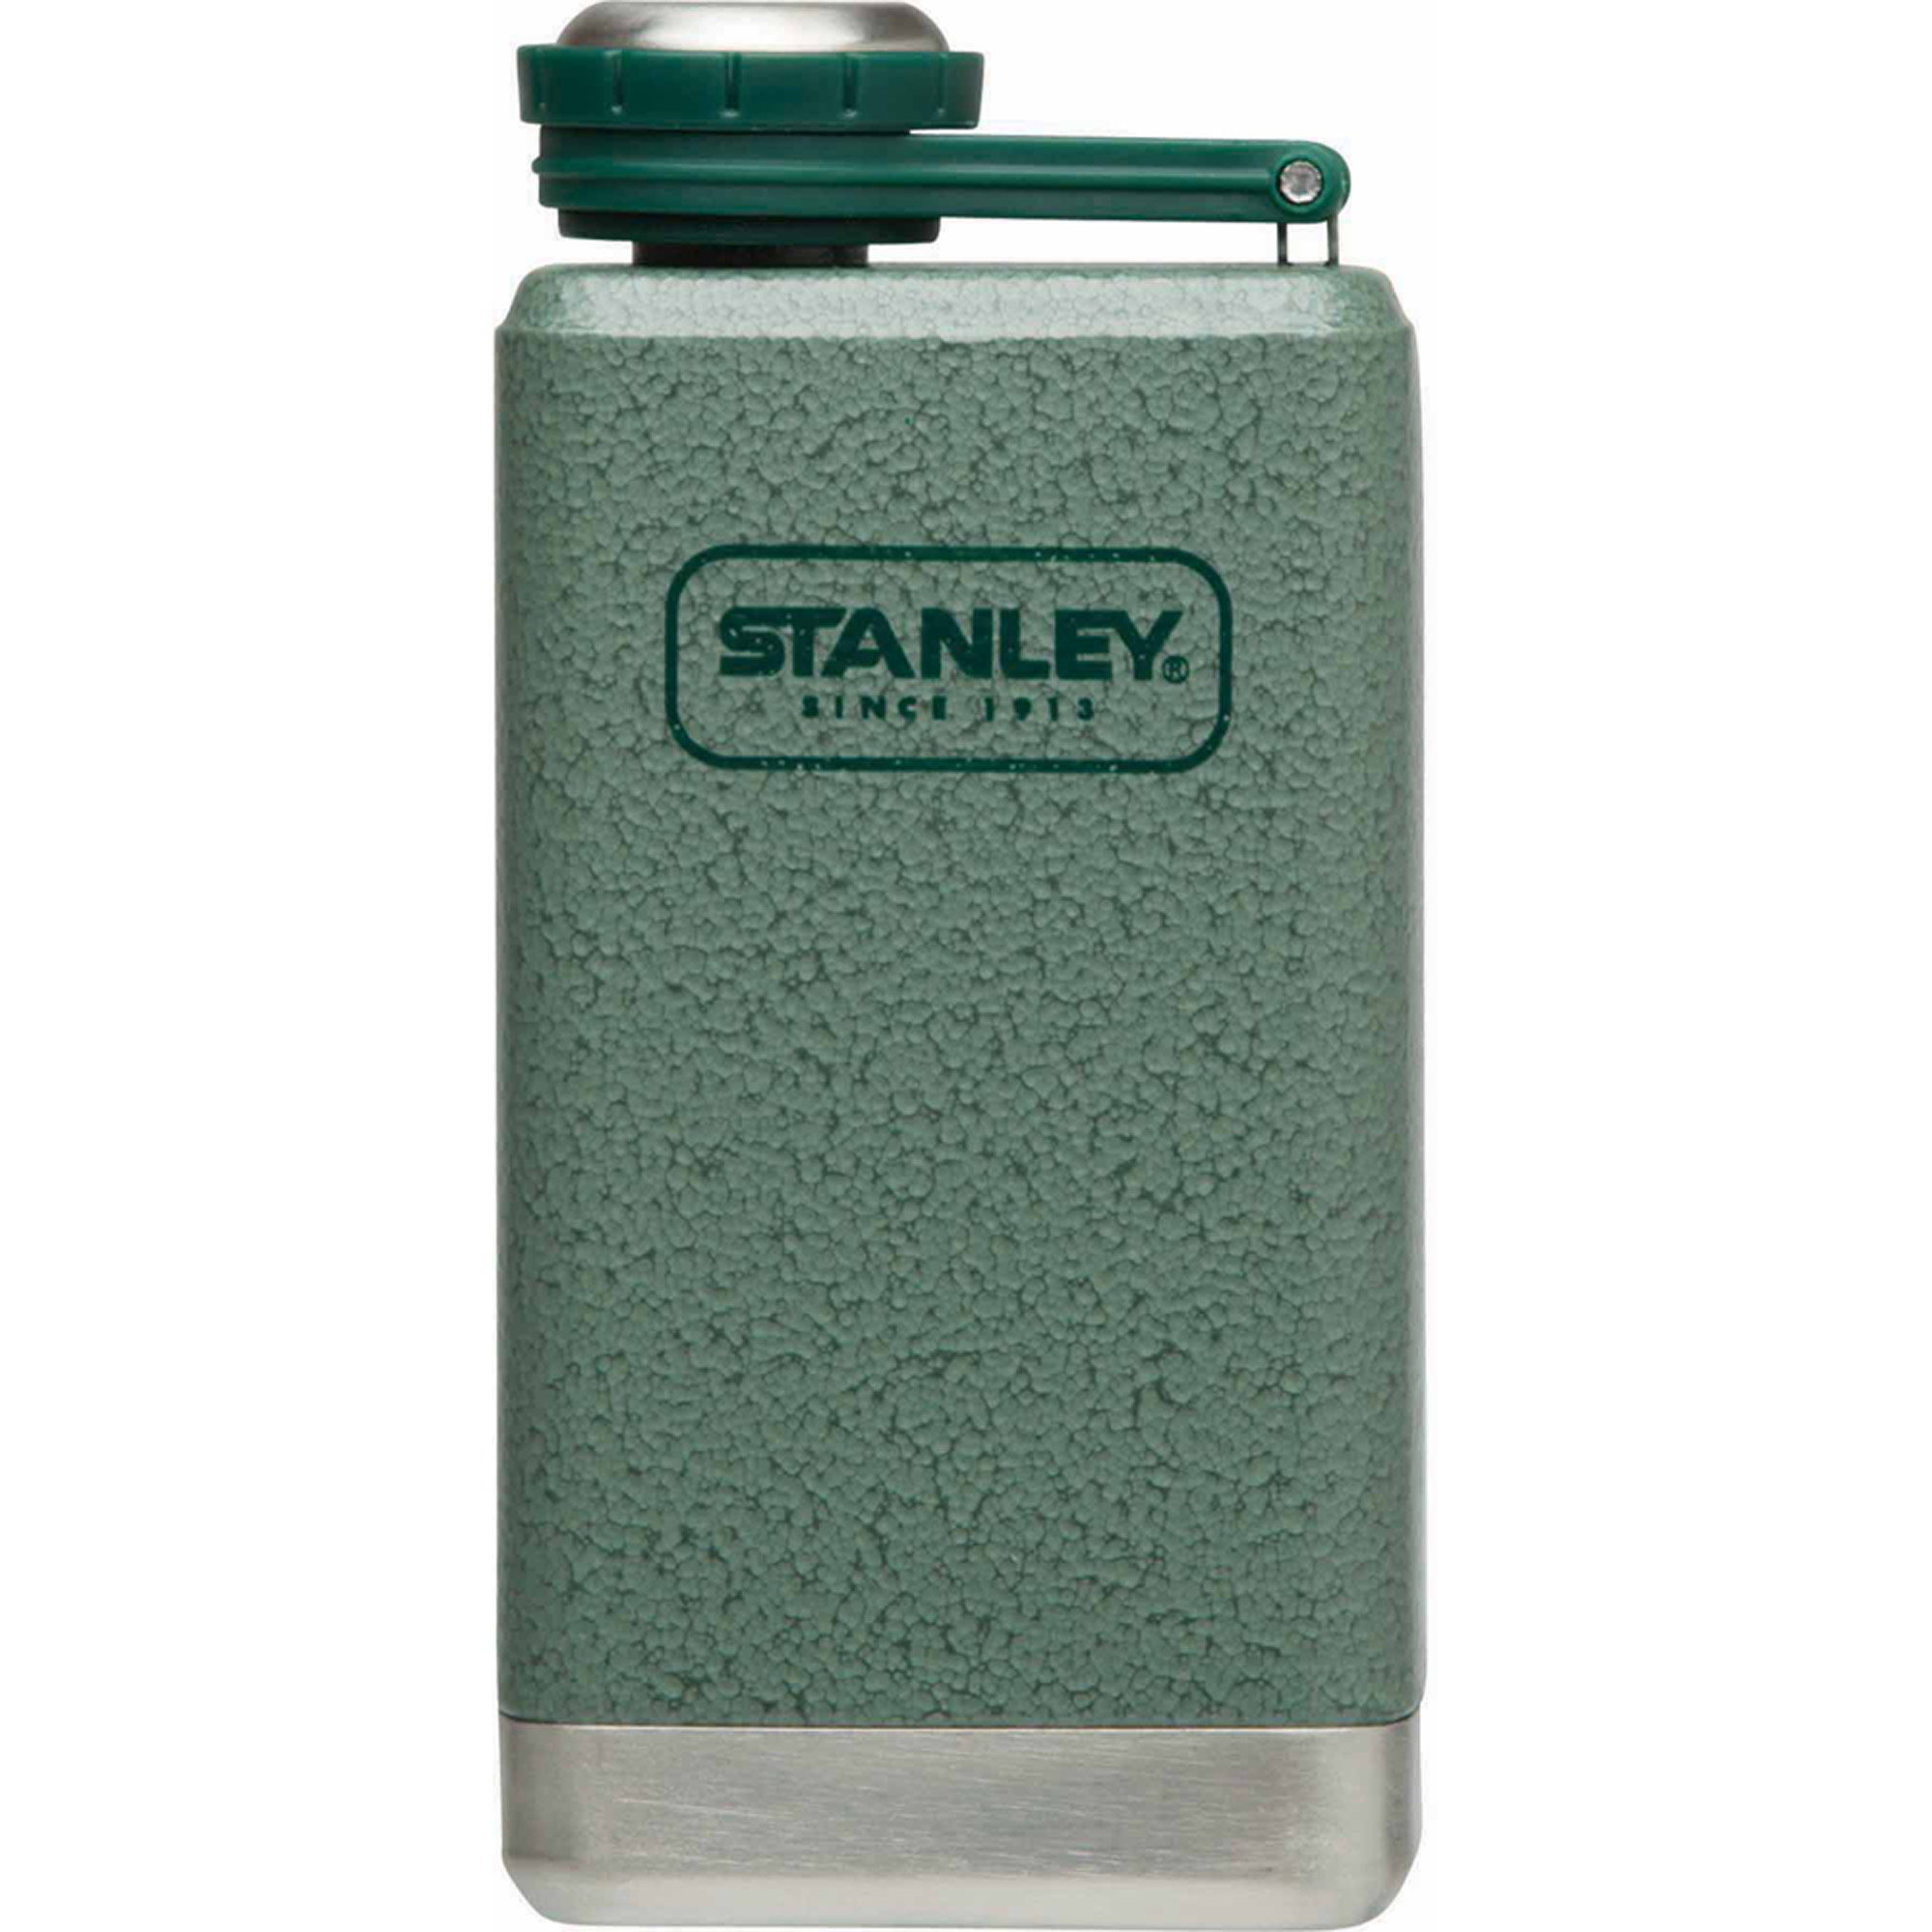 Stanley Adventure Stainless Steel Flask, 5 oz, Green